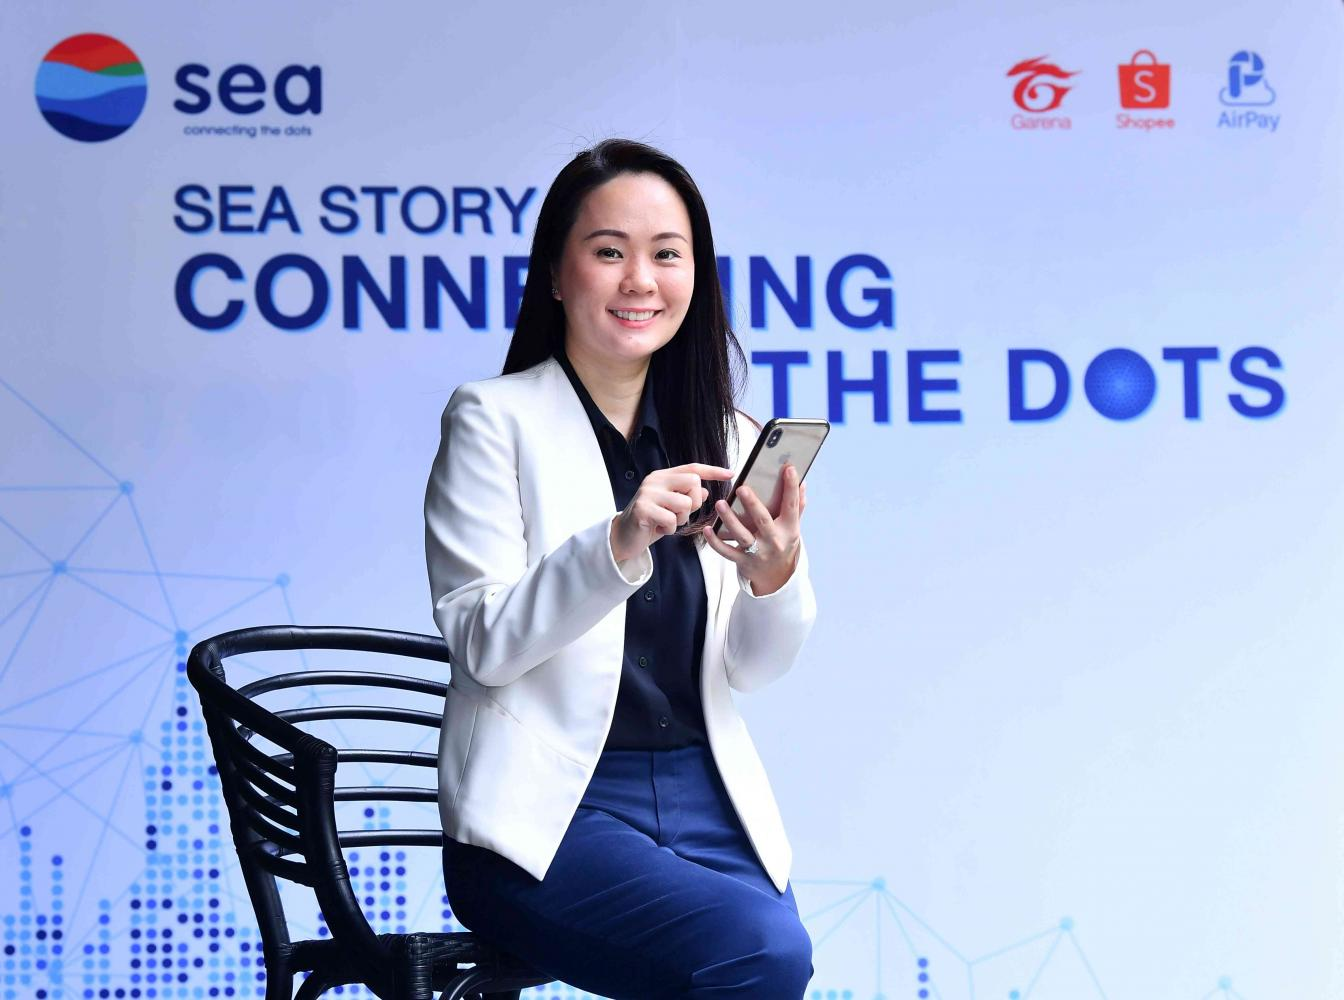 Ms Maneerat wants to build a unique footprint in Thailand's digital economy.